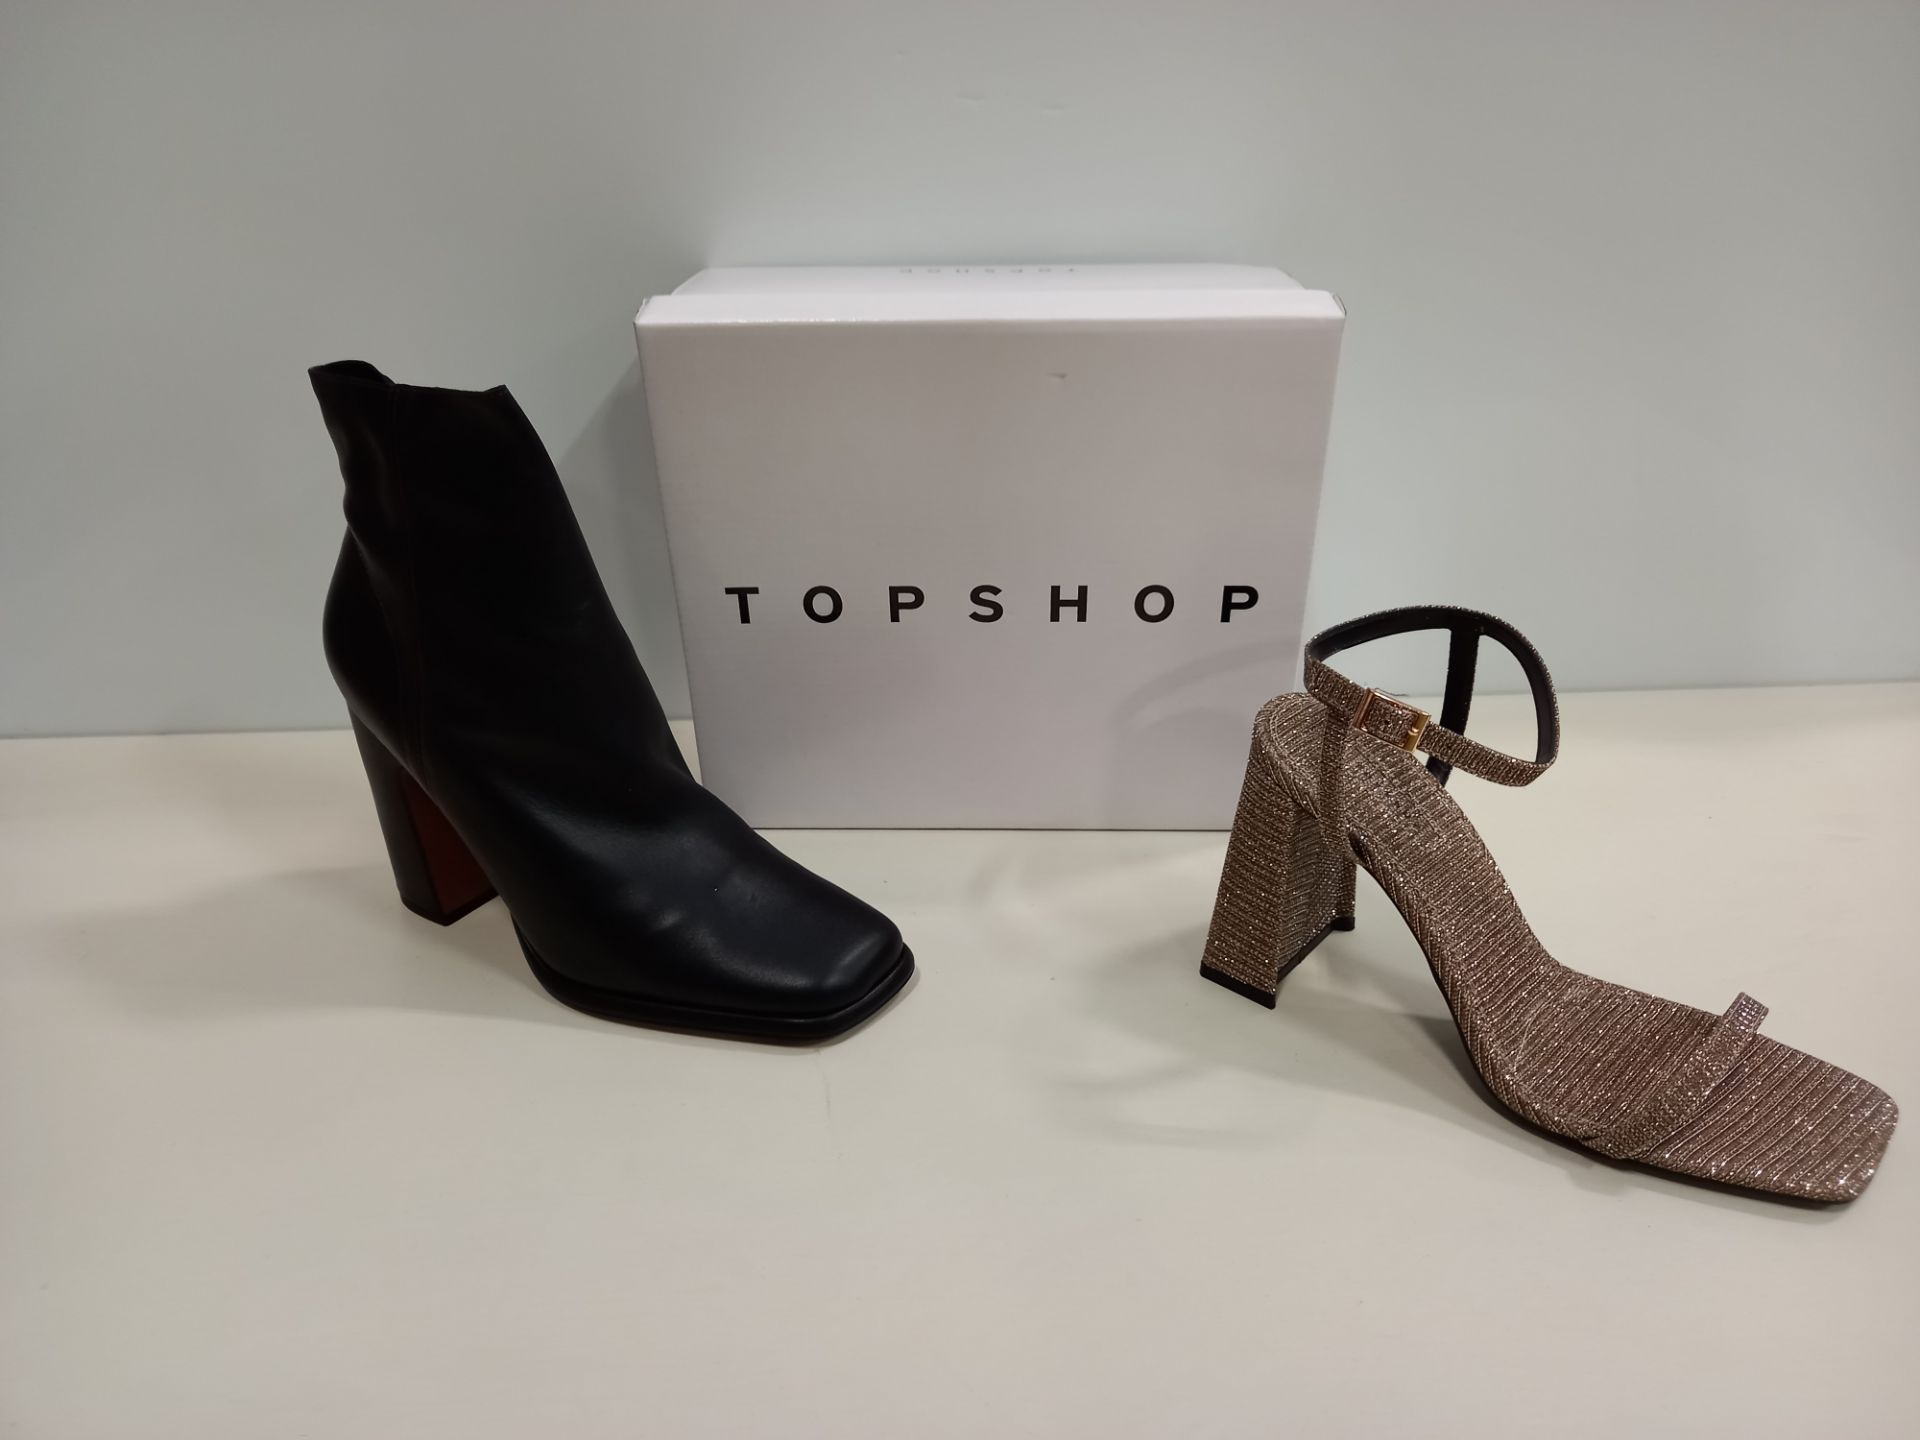 14 X BRAND NEW TOPSHOP SHOES IE ROCCO GOLD SHOES UK SIZE 7 RRP £39.00, HOLDEN BLACK SHOES UK SIZE